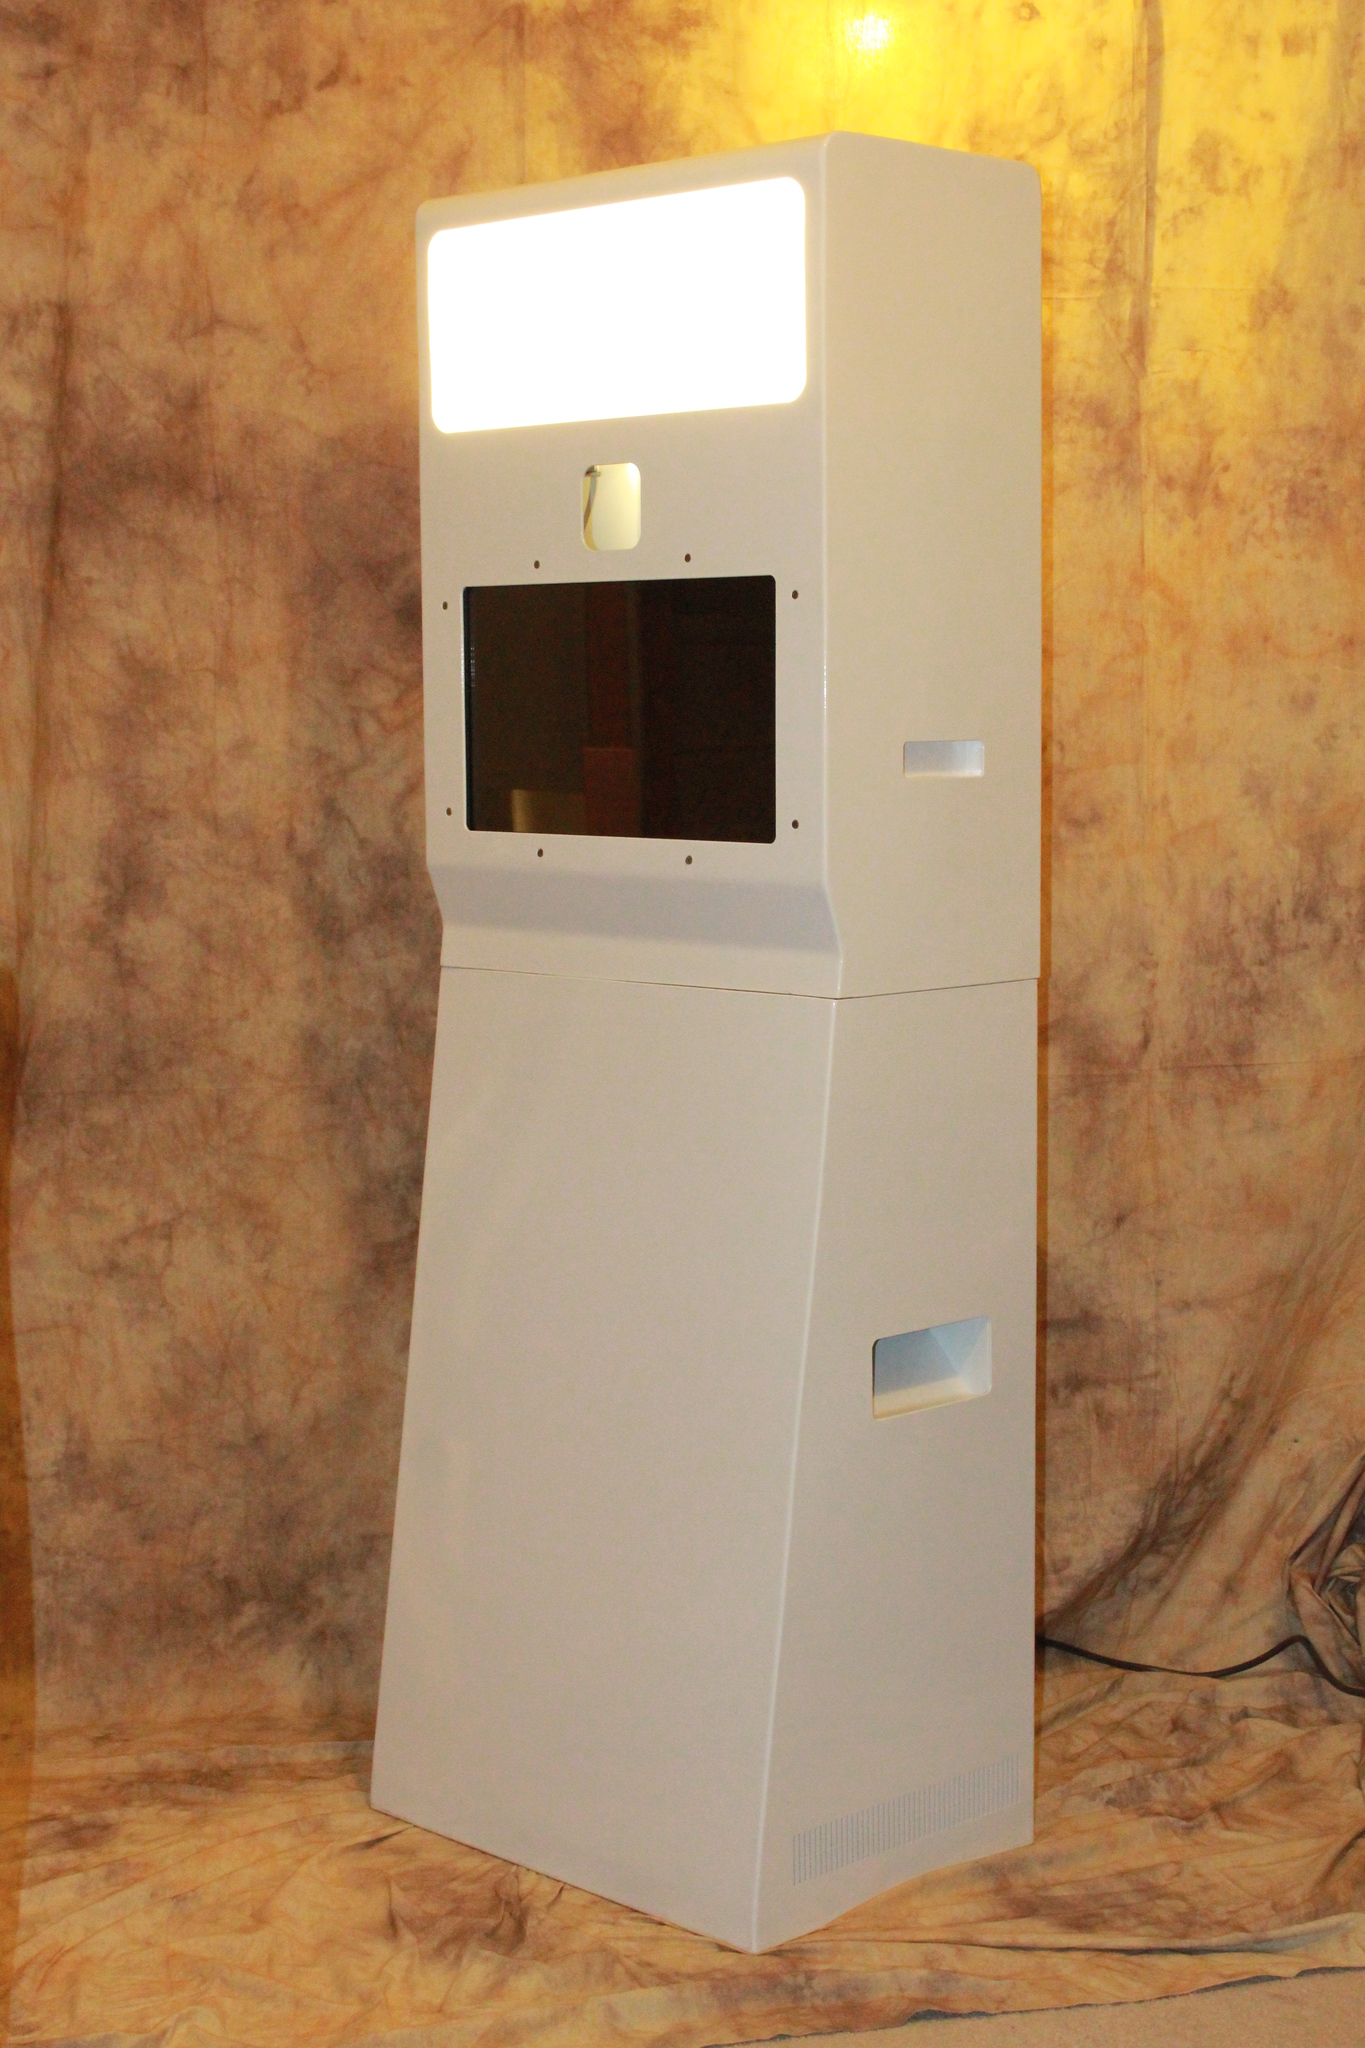 "<h2 class=""notopmargin"">ReBooth Photobooth brings all the fun and excitement to any occasion!</h2>  <p>What makes us different from the traditional photo booths?</p><br/>  <ul> <li>Nicely made photo booth with touch screen monitor that offer live view, DSLR camera, Studio lighting, Ultra fast photo printer, External monitor for slideshow and a very helpful photobooth attendant</li> <li>Open concept booth. This lets everyone join in the fun. No curtain and more people could join in!</li> <li>Slideshow. All the photos taken are shown in a separate screen for the entire world to see and enjoy. Shy type? Not after you step out of our booth!</li> <li>Social Station (iPad). Prints are not enough. Use our social station (iPad) to instantly share your photos with friends and family via Facebook, Twitter and email while waiting for the prints to come out. Go viral!</li> <li>Customized layout and wide variety of backdrops. Personalized welcome and thank you screen. The possibilities are endless. </li> <li>4x6 photo vs. 2x6 strips. We use 4x6 photos are bigger and better. If you want photo strips (2X6) we have that too!</li> <li>Props. We have tons of props for you and your guests to choose from, included in your rental fee. Go crazy!</li> <li>Unlimited photo sessions with instant print!. Each pictures are printed with in less than 30 seconds! Yes, it is that fast. How cool is that?</li> <li>Individual photos taken during your event are available for viewing and downloading on our gallery for FREE, with option for password-enabled albums for privacy.</li> <li>Download link. After all has been said and done, you (the host) will get a download link (zip) of all the high-resolution photos, theres no need for a CD's or USB. And sharing made easy just forward the link to whoever you want! </li>  </ul>  <p>Call us today and let ReBooth manage the fun part of your event!</p>"